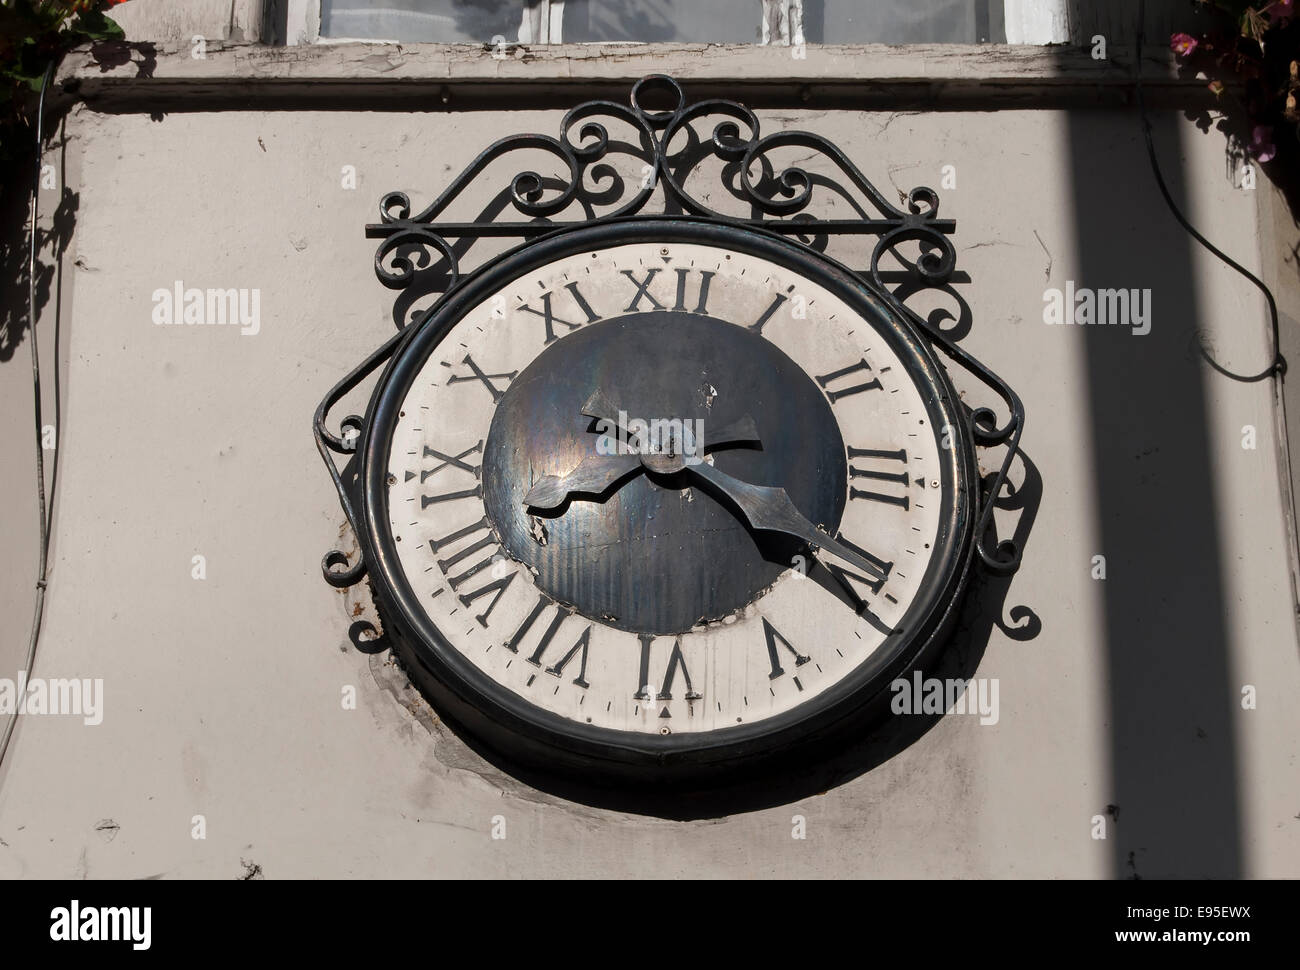 roman numeral clockface on exterior of the george public house, twickenham, middlesex, england - Stock Image